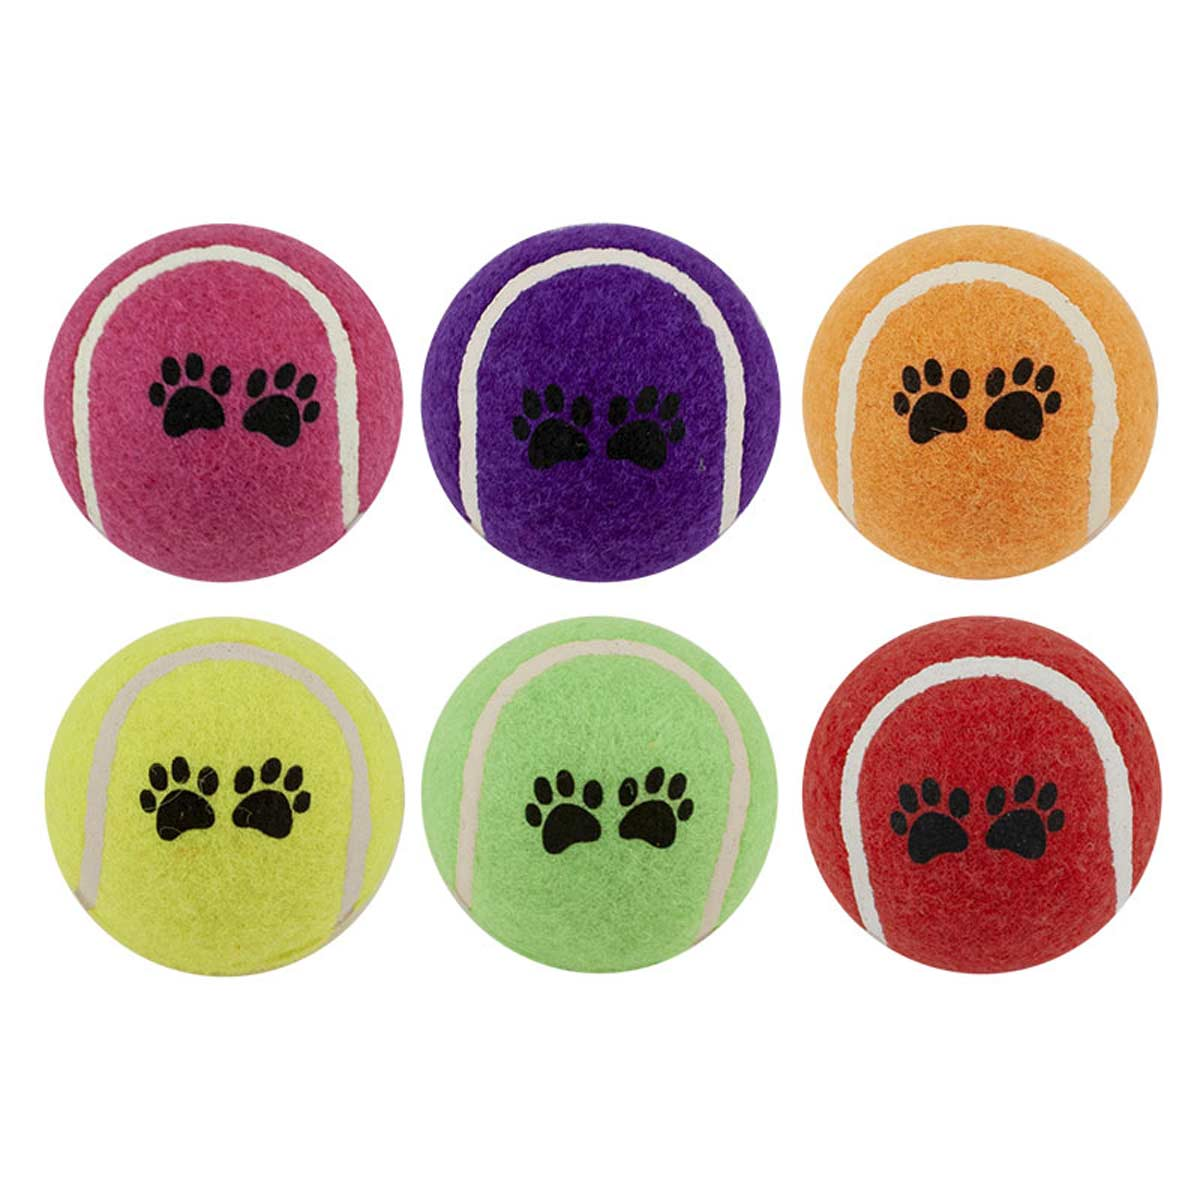 Assorted Tennis Ball 2.5 inch Dog Toy